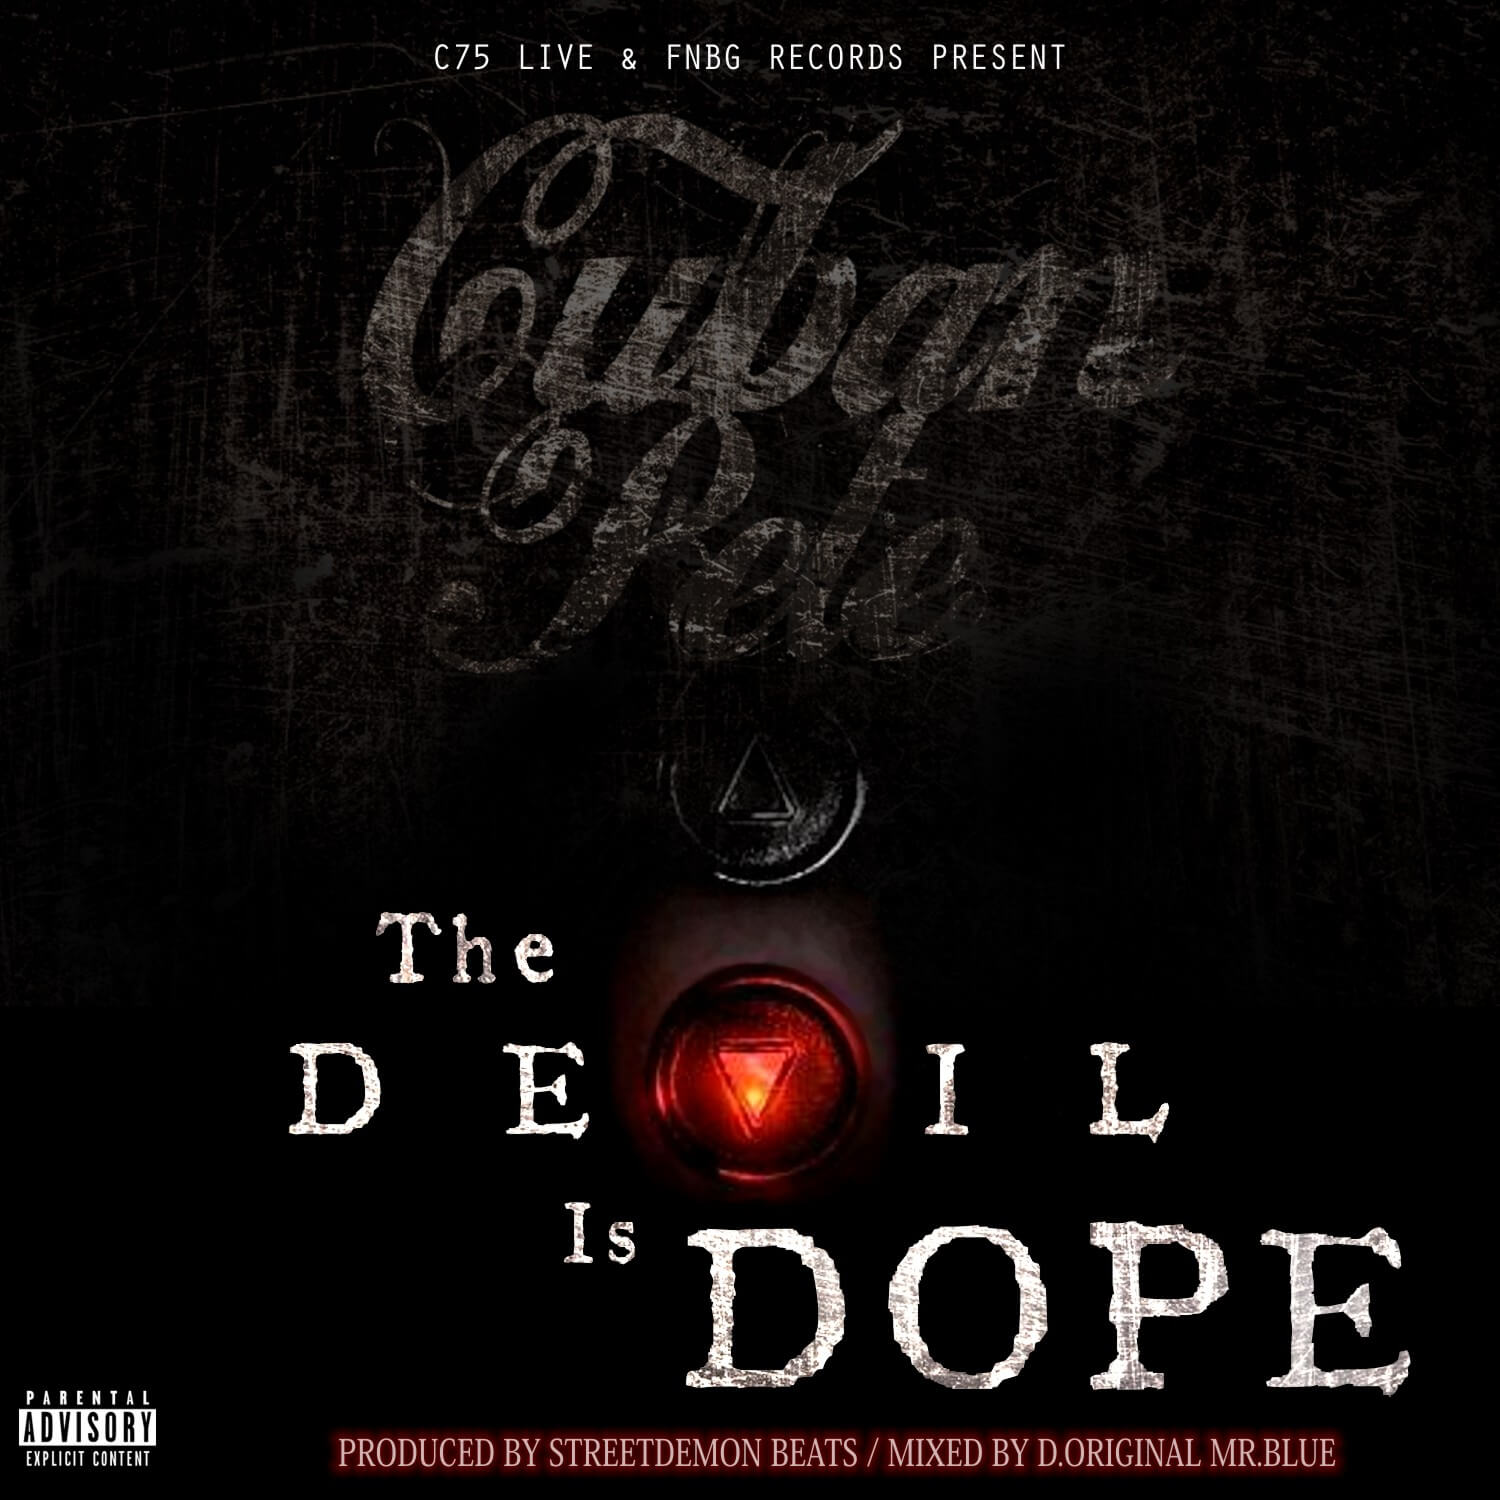 Cuban Pete - The Devil Is Dope - Artwork